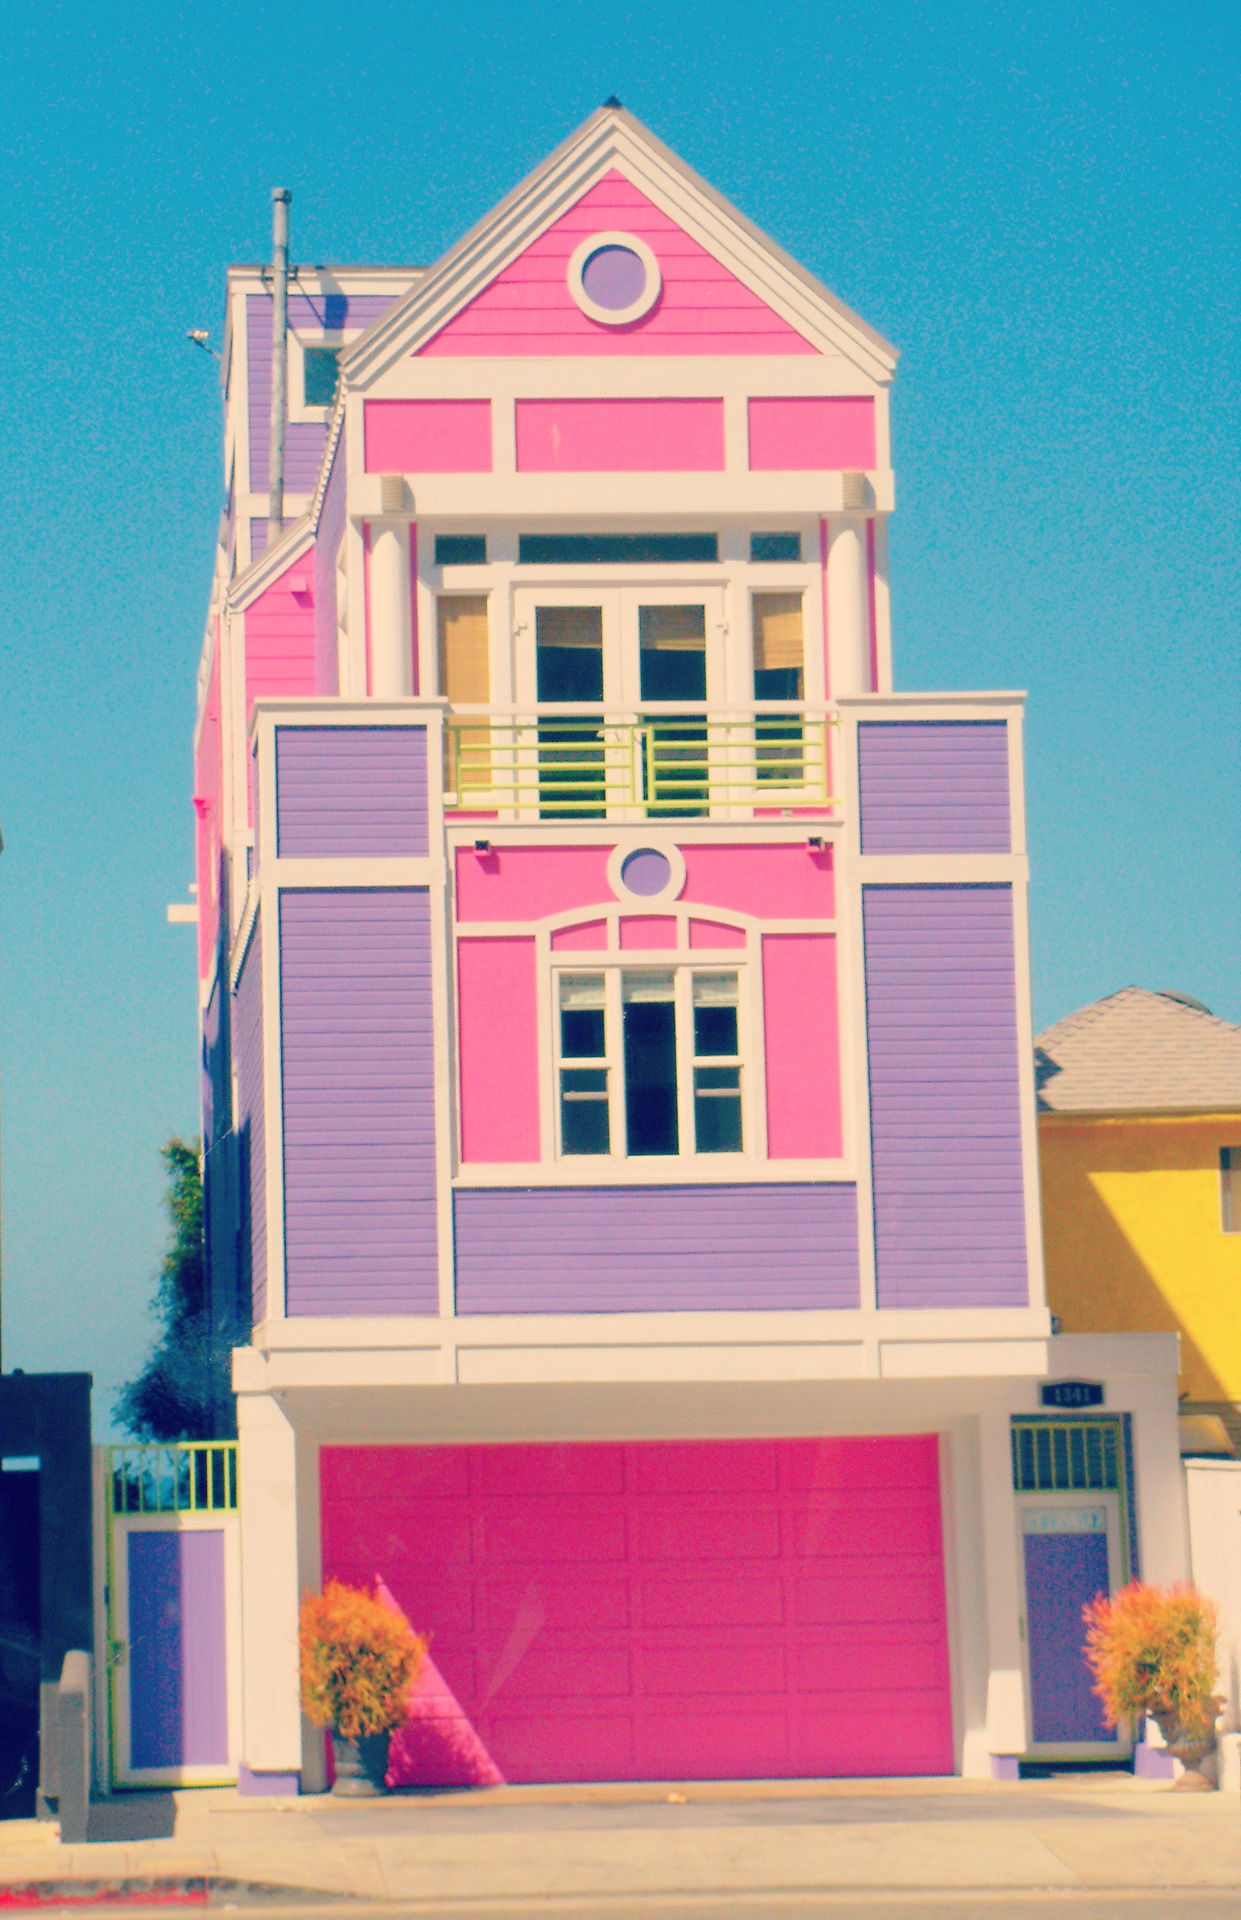 hello-alva:  House of Ruth Handler creator of Barbie in Santa Monica, L.A. California.